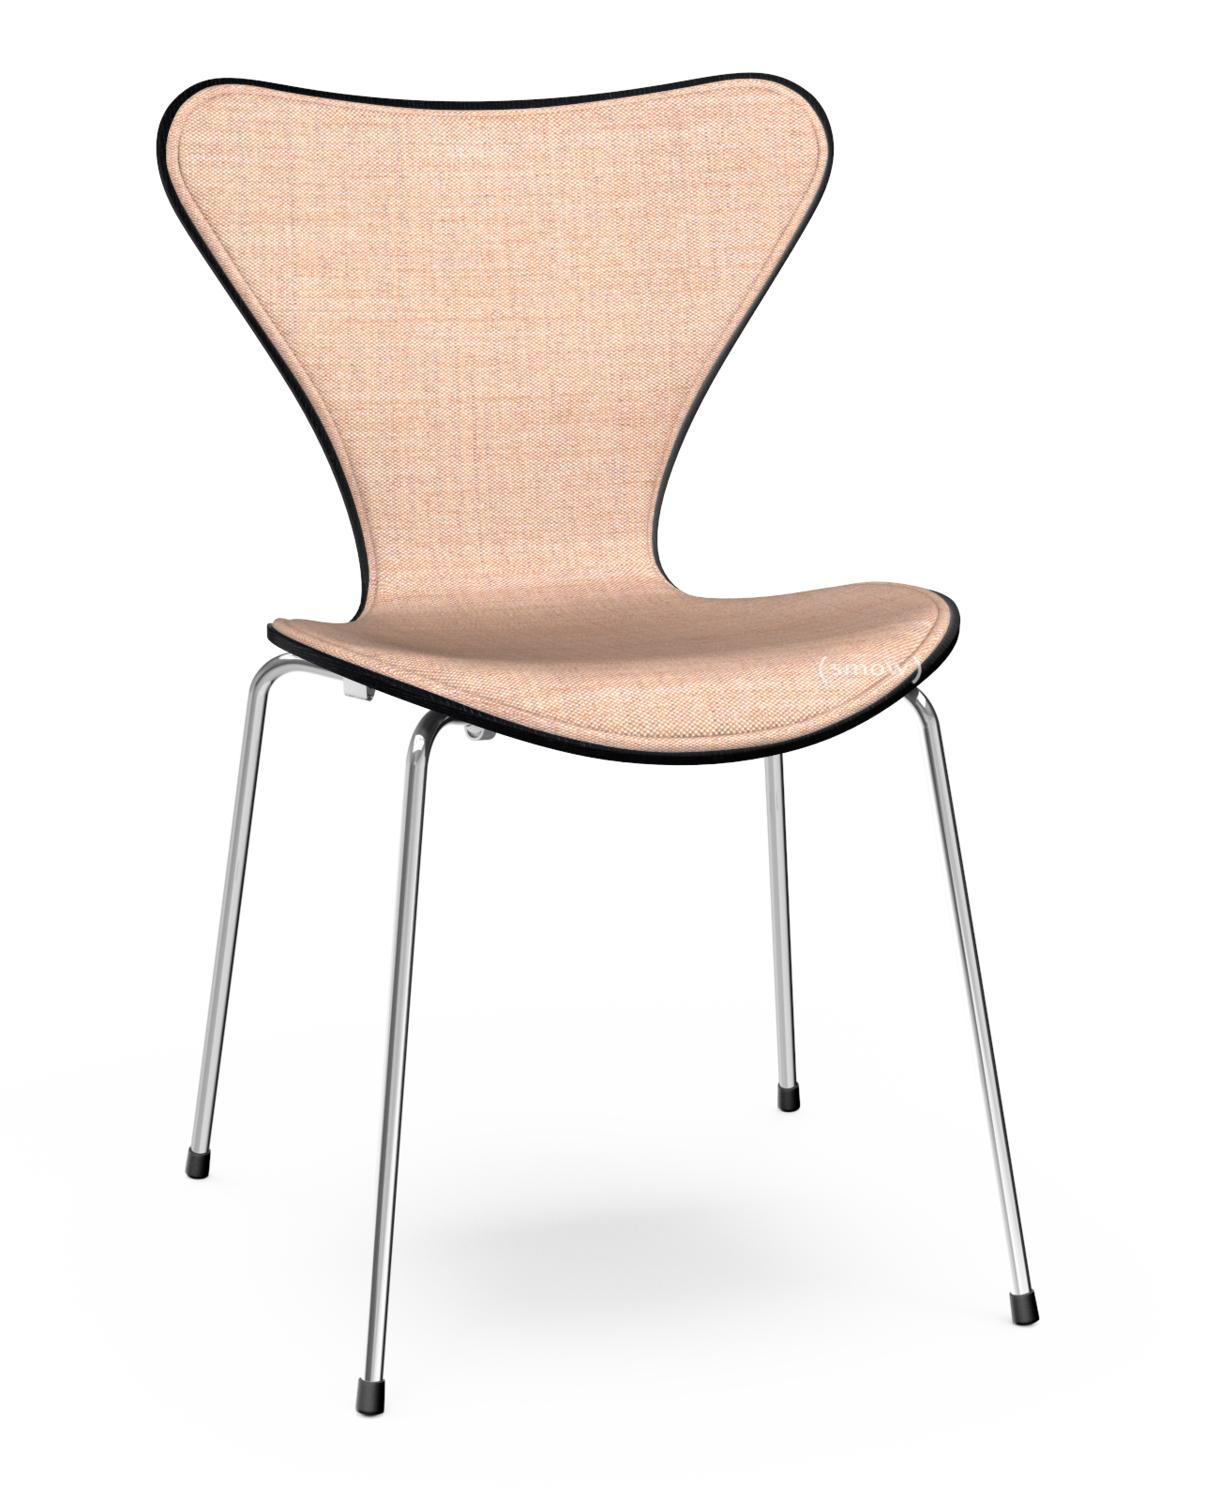 Series 7 Chair Front Upholstered Coloured Ash|Black|Fabric Remix Light  Pink/rose